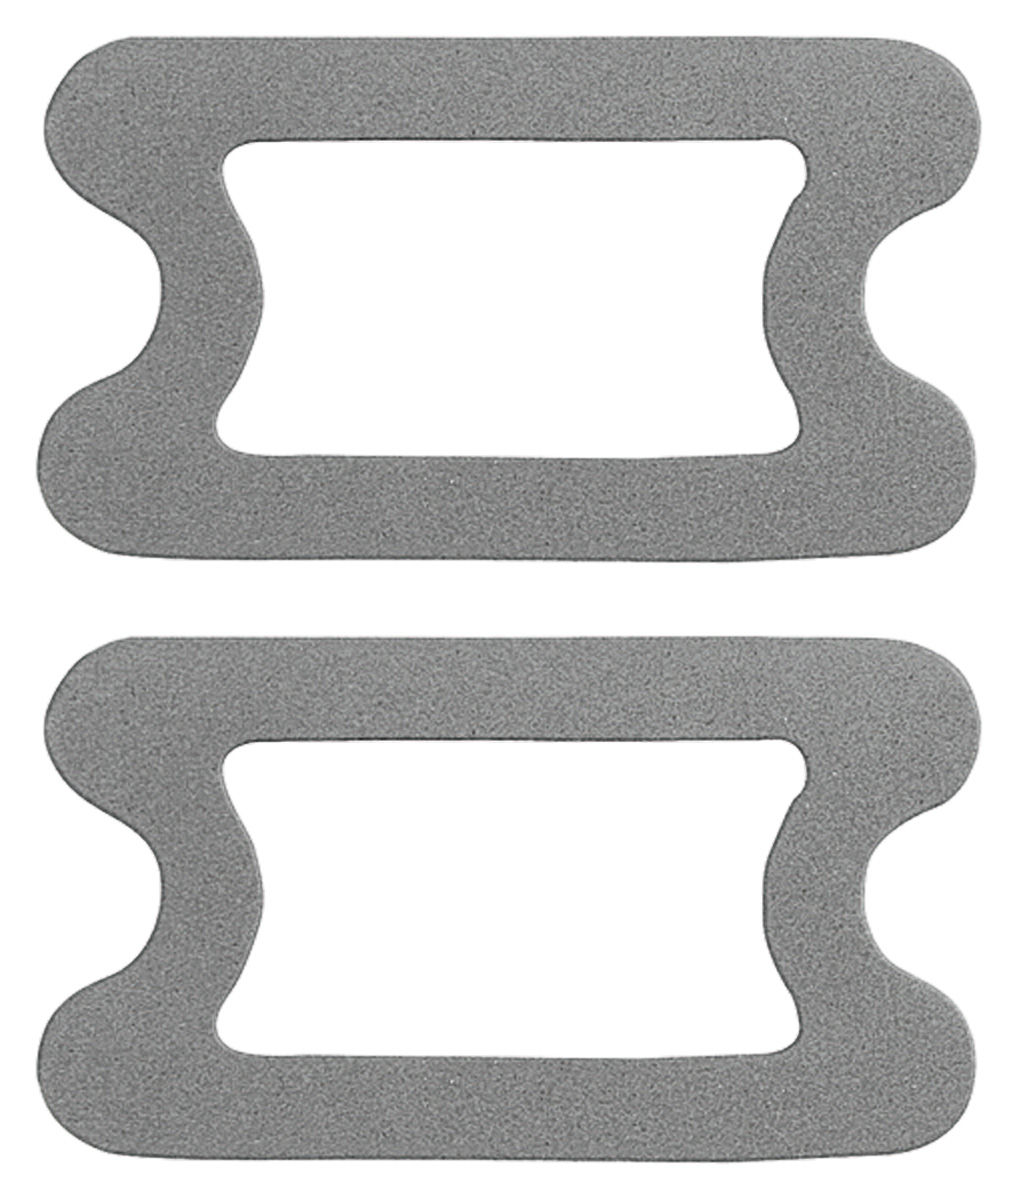 Gasket, 64-65 Cadillac, Rear License Lens - 64 All, 65 Srs 75